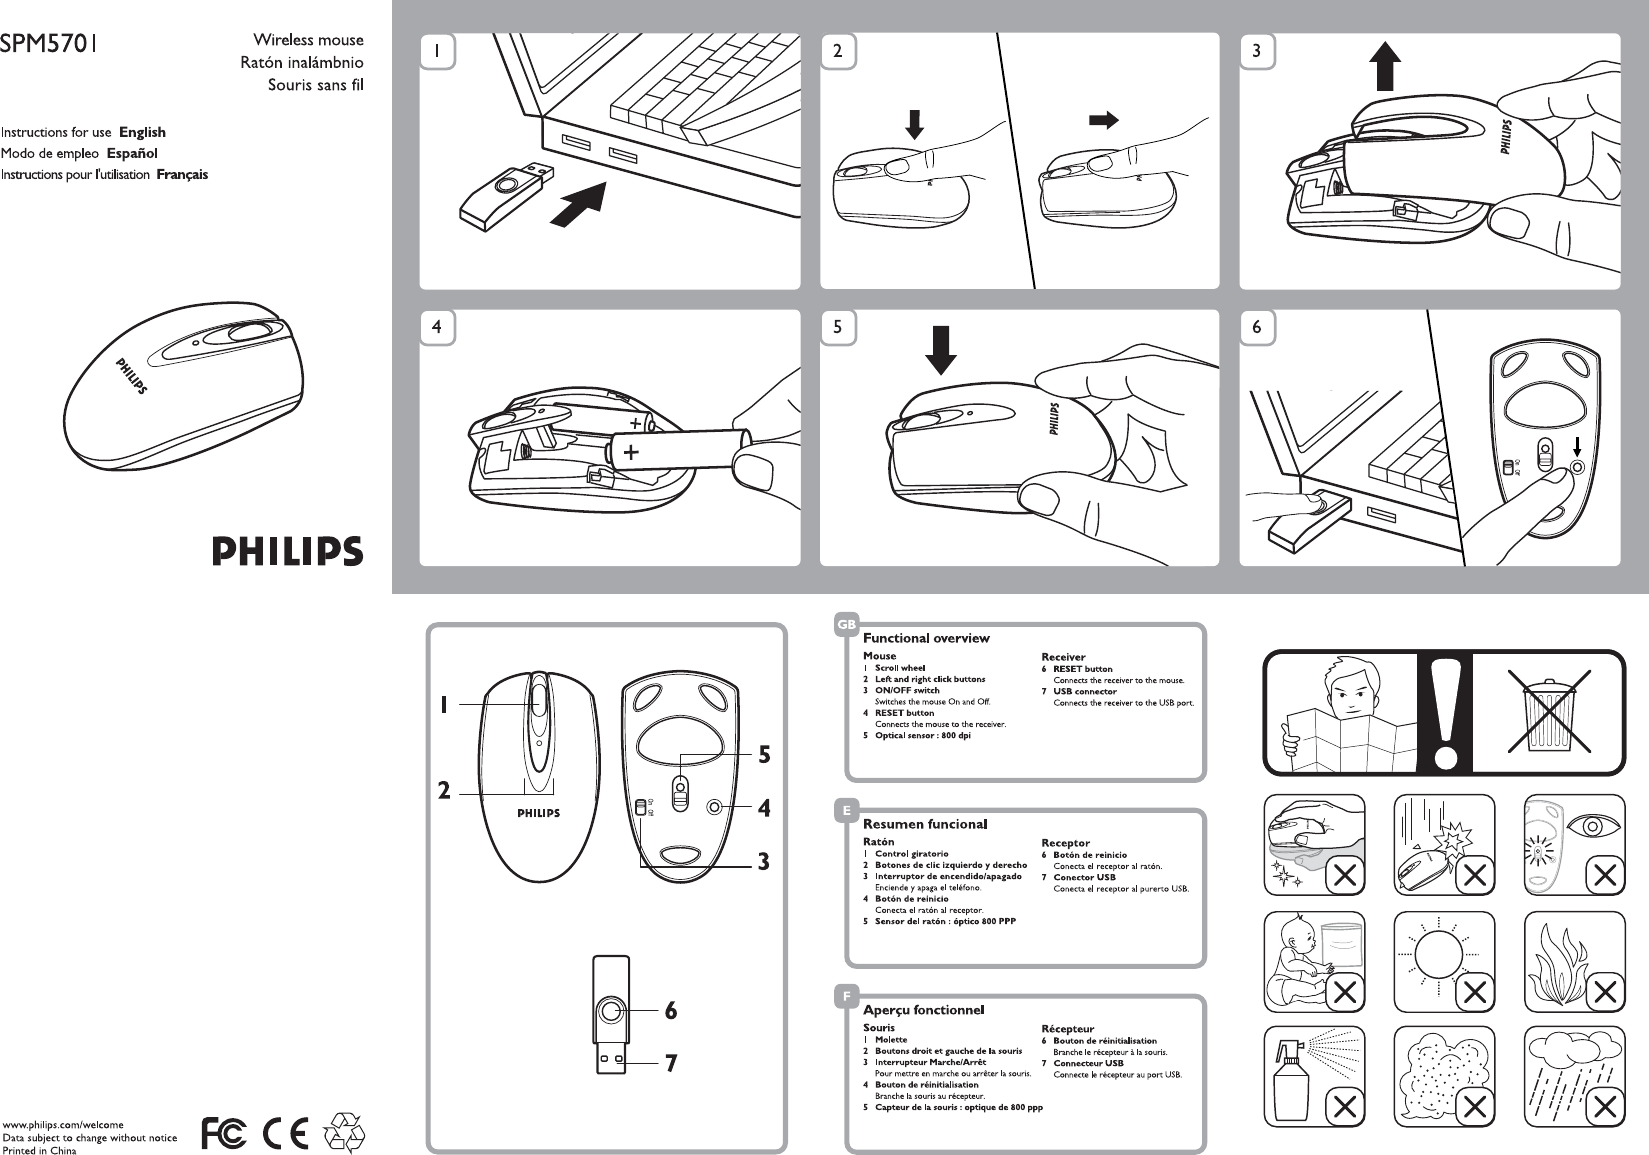 philips mouse spm5701 user guide manualsonline com rh office manualsonline com Philips Flat TV Manual Philips Universal Remote User Manual